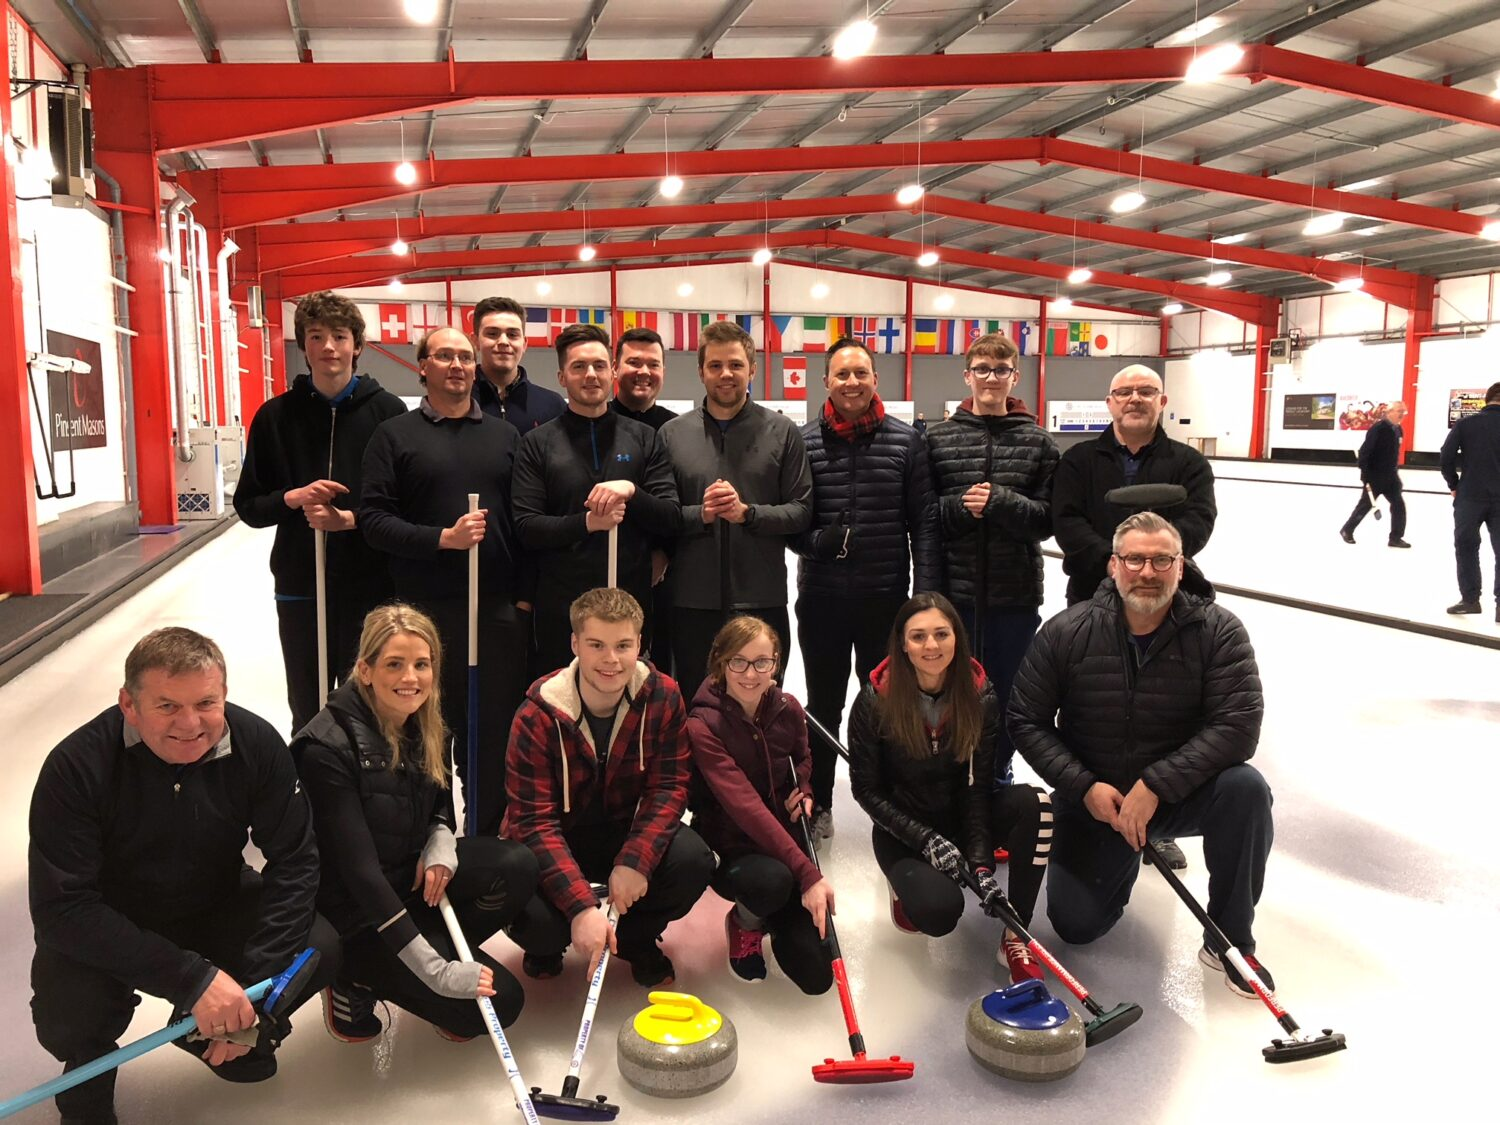 Edinburgh team night out at Murrayfield Curling Rink